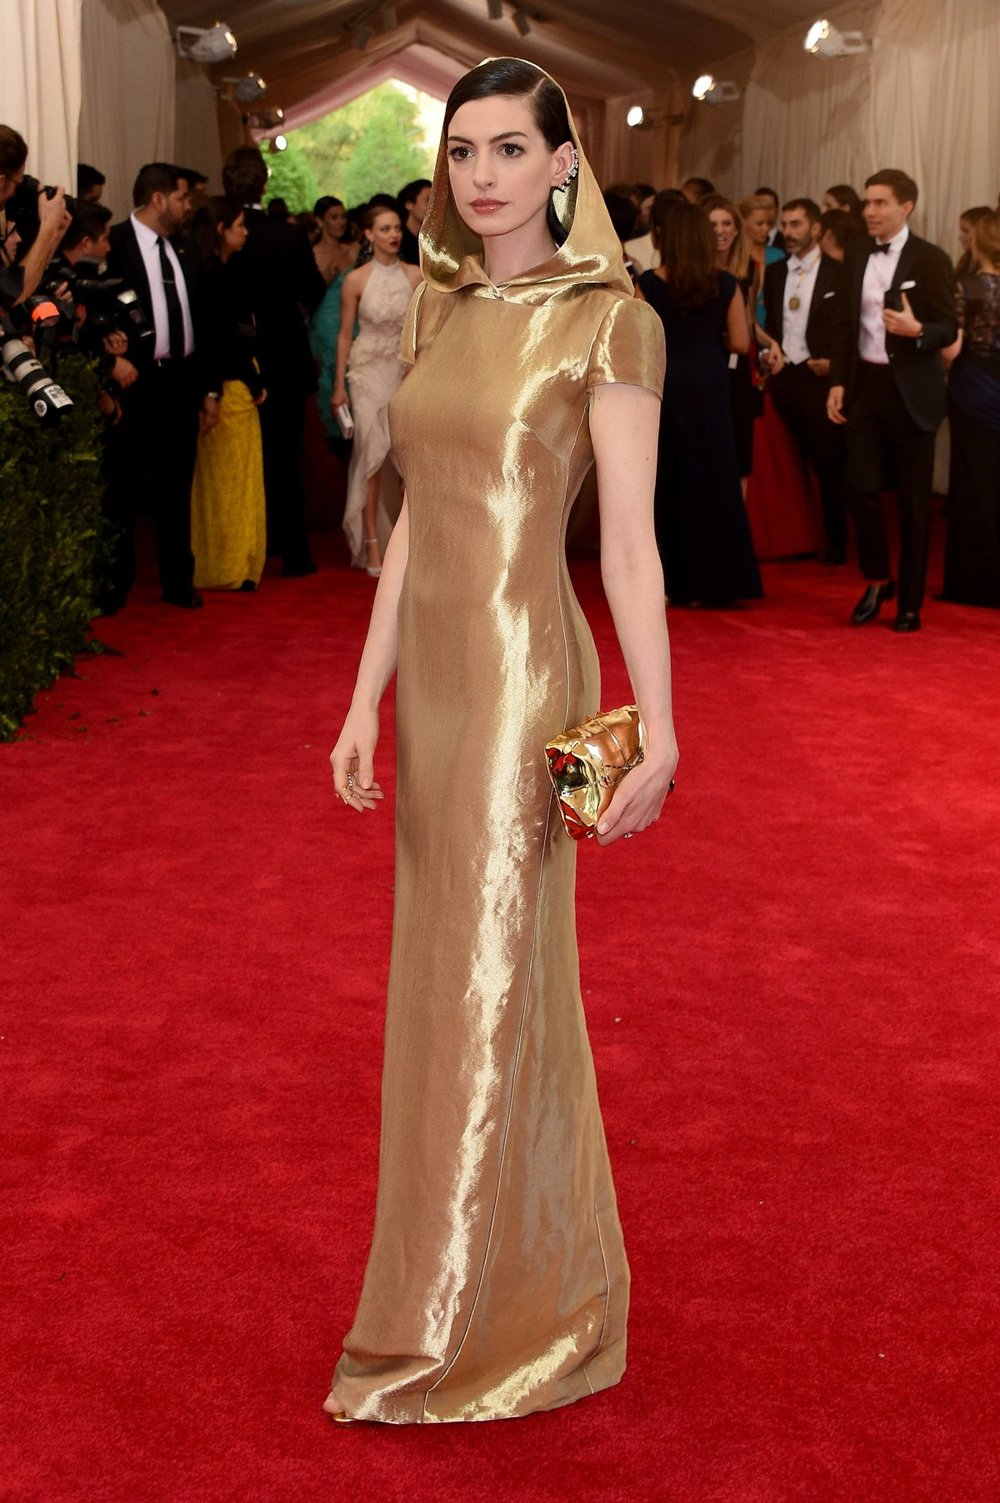 ANNE HATHAWAY in RALPH LAUREN with REPOSSI jewelry and a BENEDETTA BRUZZICHES clutch